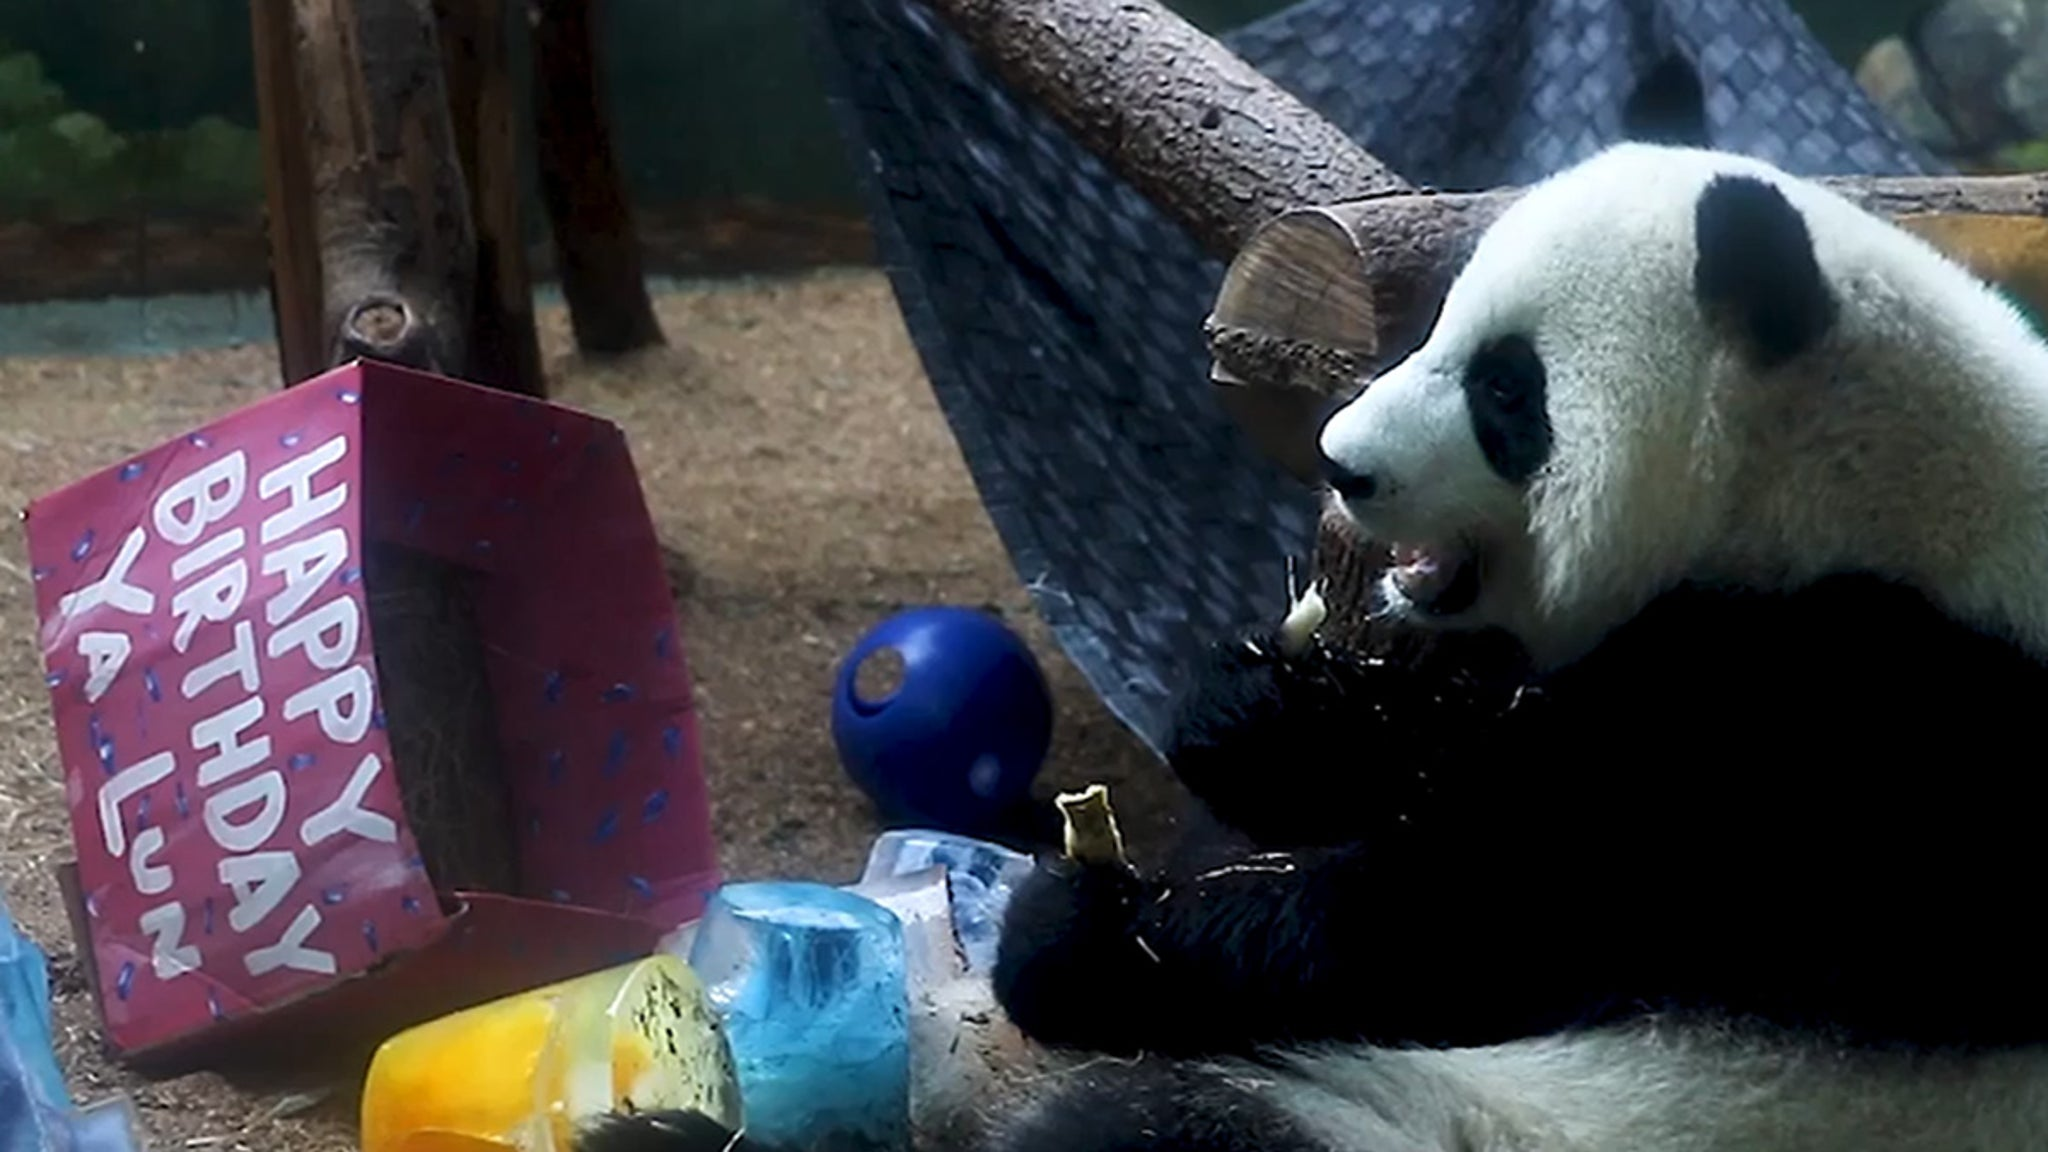 Giant Panda Twins 4th Birthday Party!!! Bear-ly Containin' Themselves